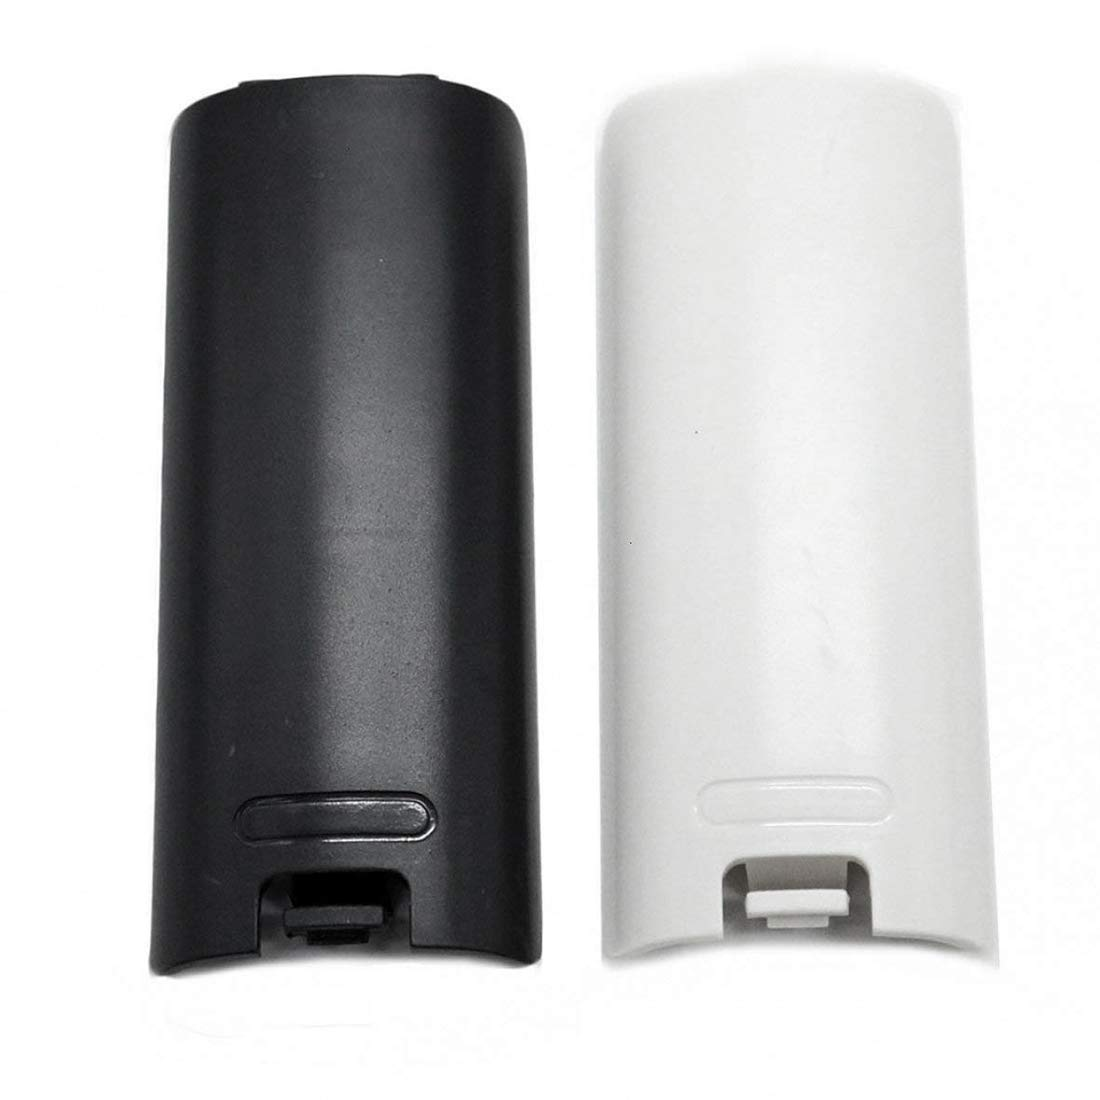 SODIAL 2pcs Black and White Replacement Battery Back Door Cover Shell for Wii Remote Controller